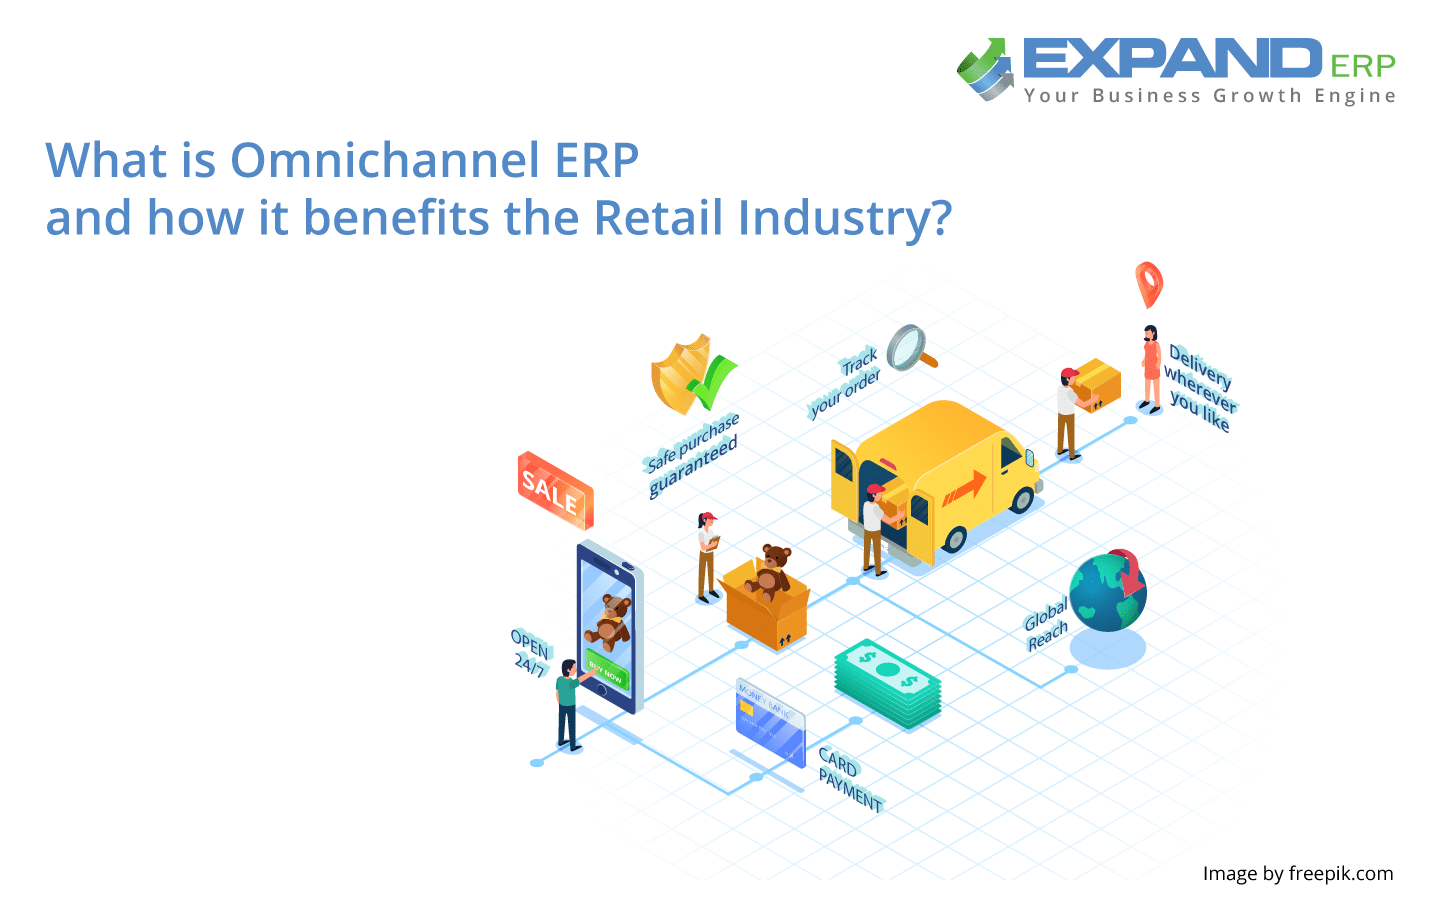 What is Omni channel erp and how it benefits the retail industry